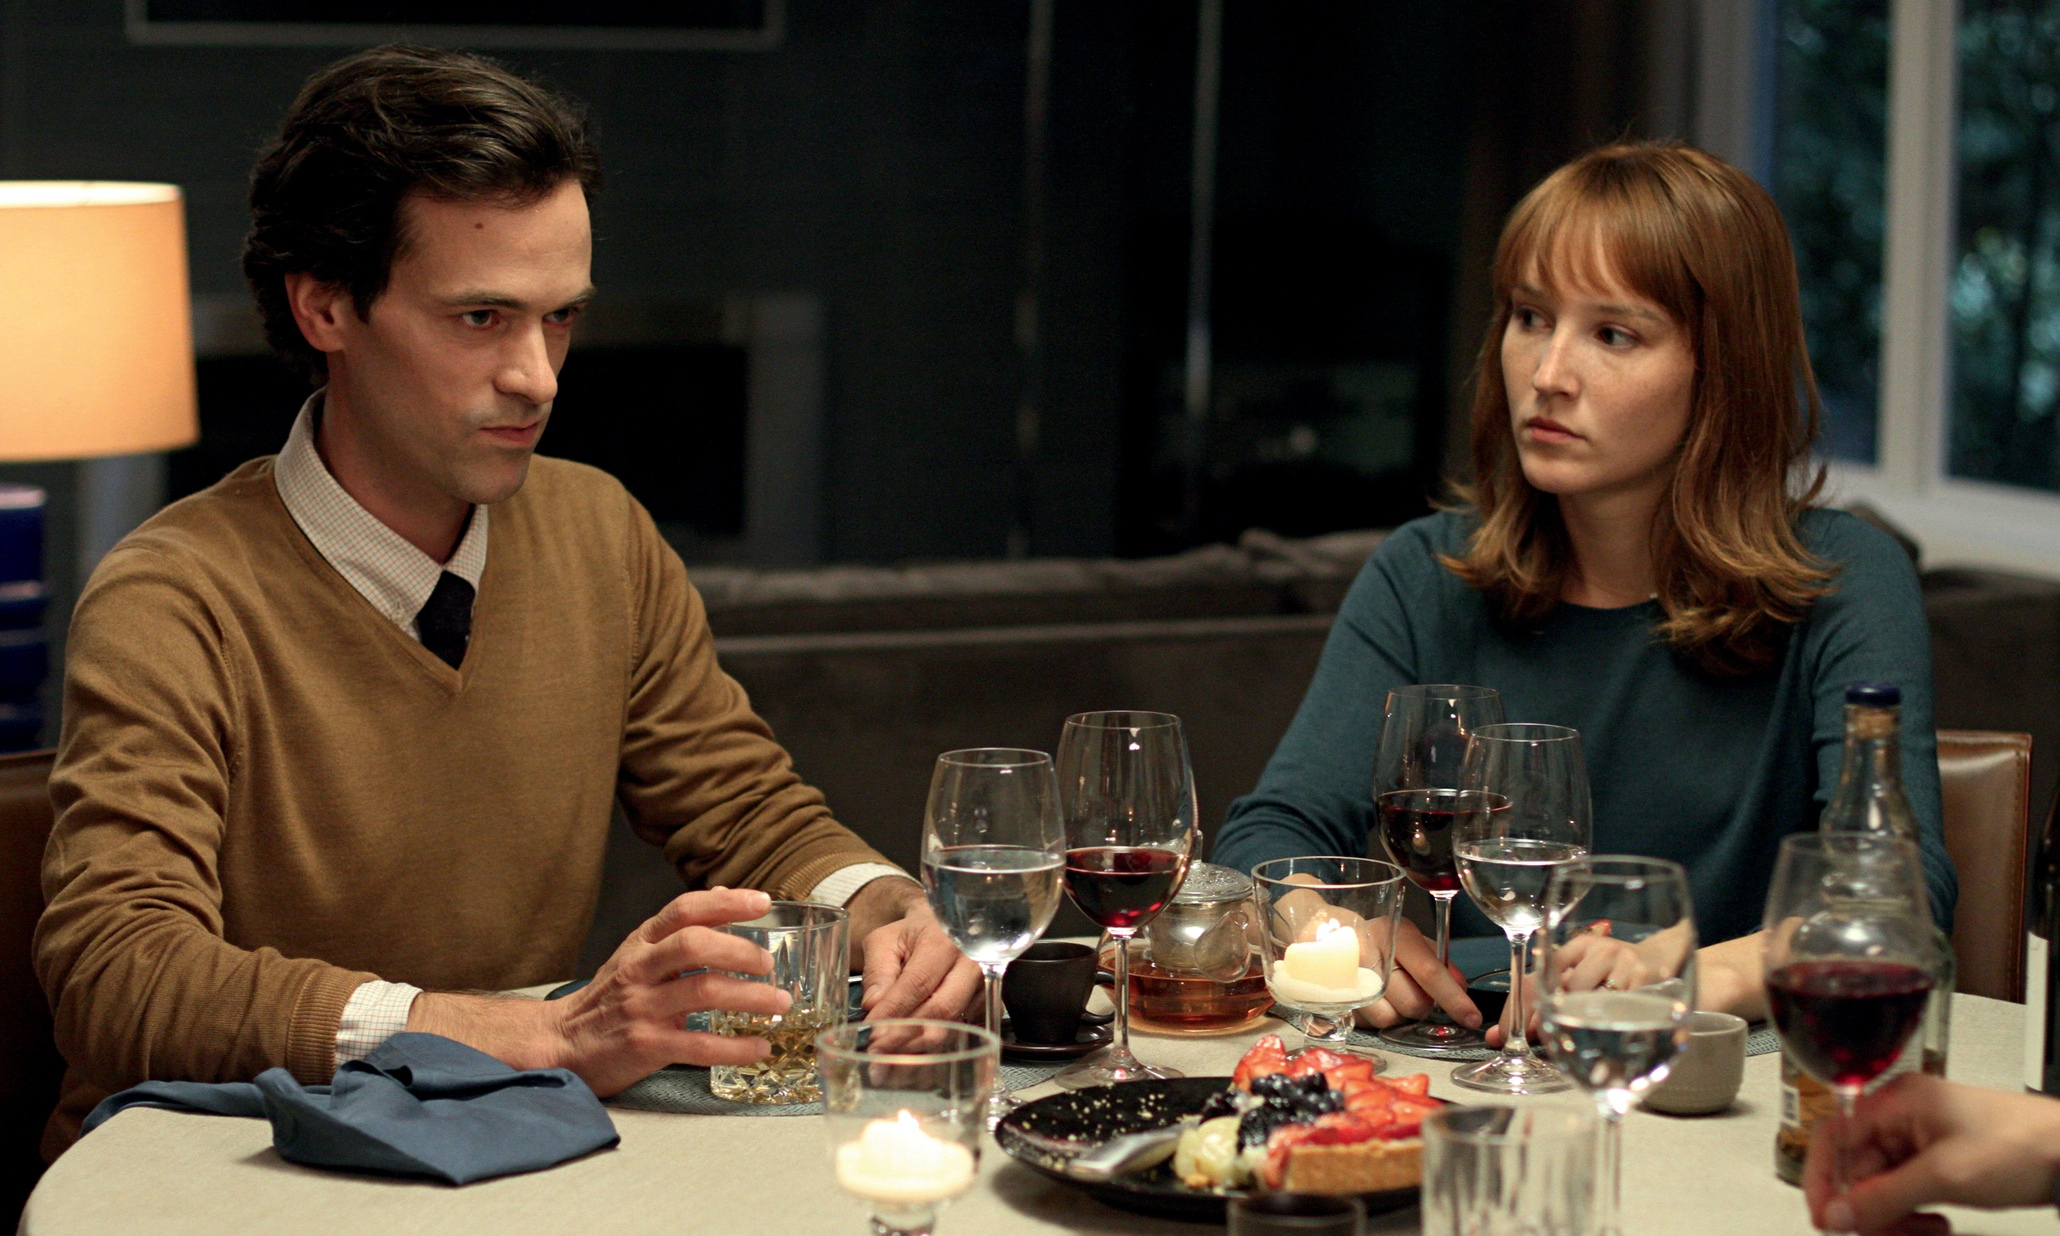 The New Girlfriend , directed by François Ozon